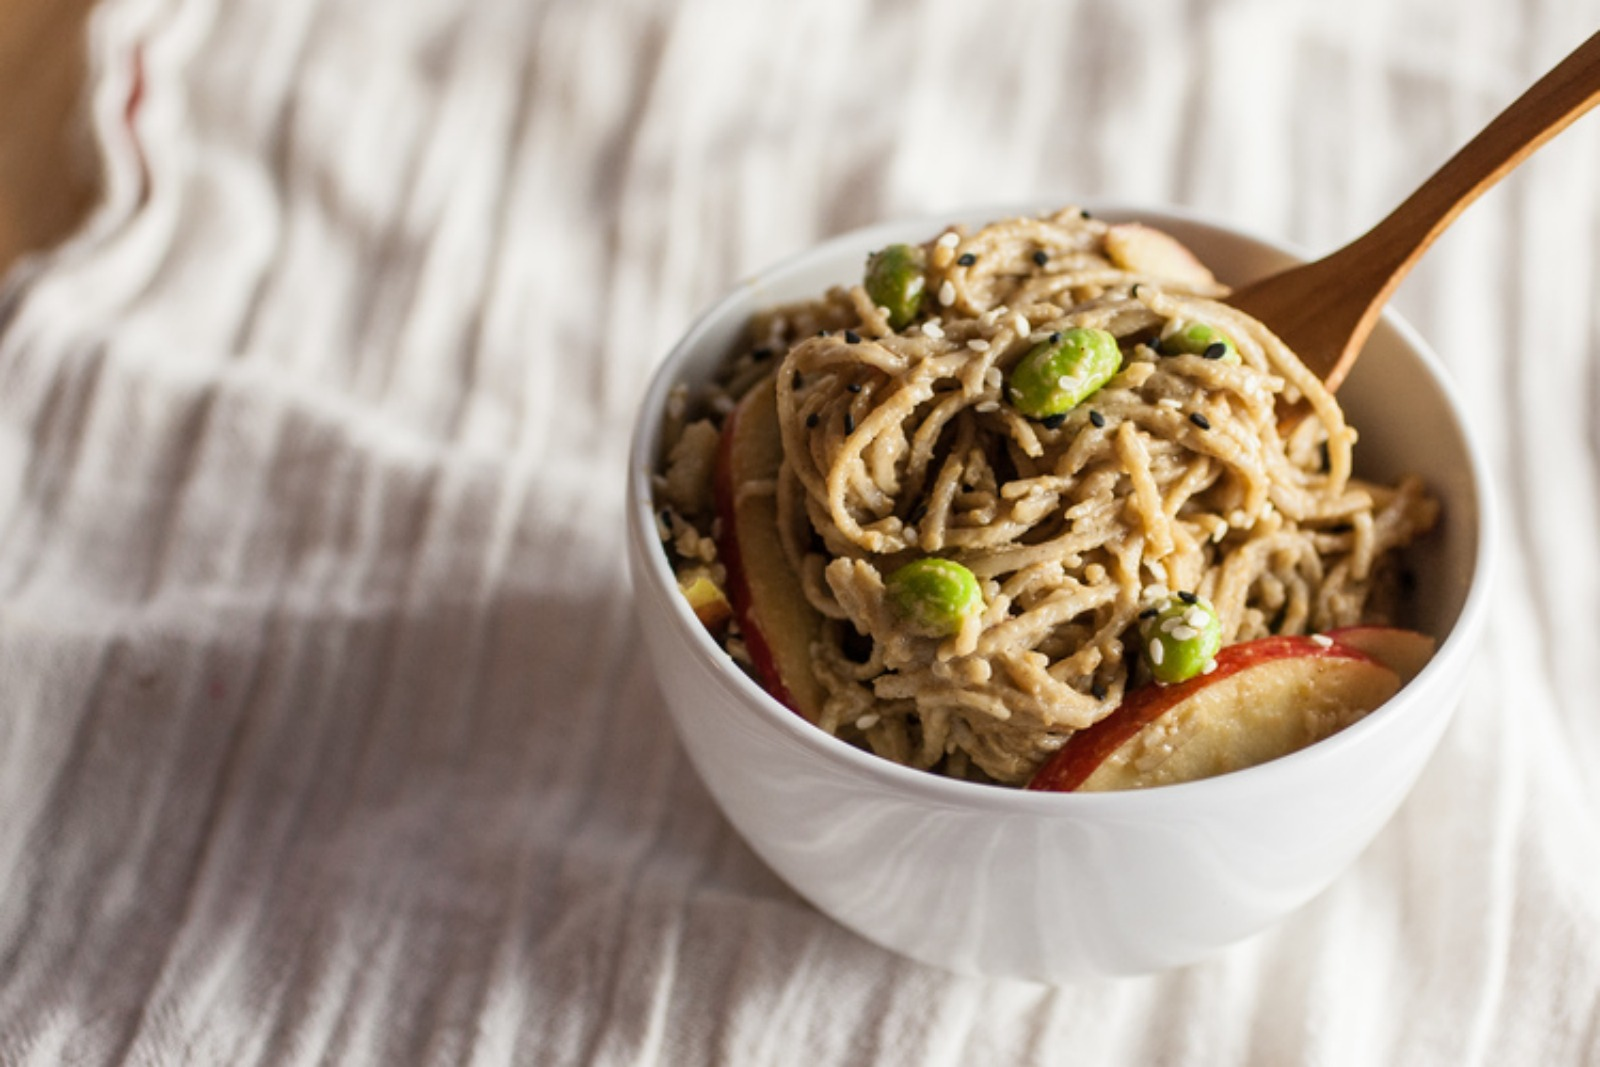 Maple Peanut Soba Salad with Edamame & Apples [Vegan]